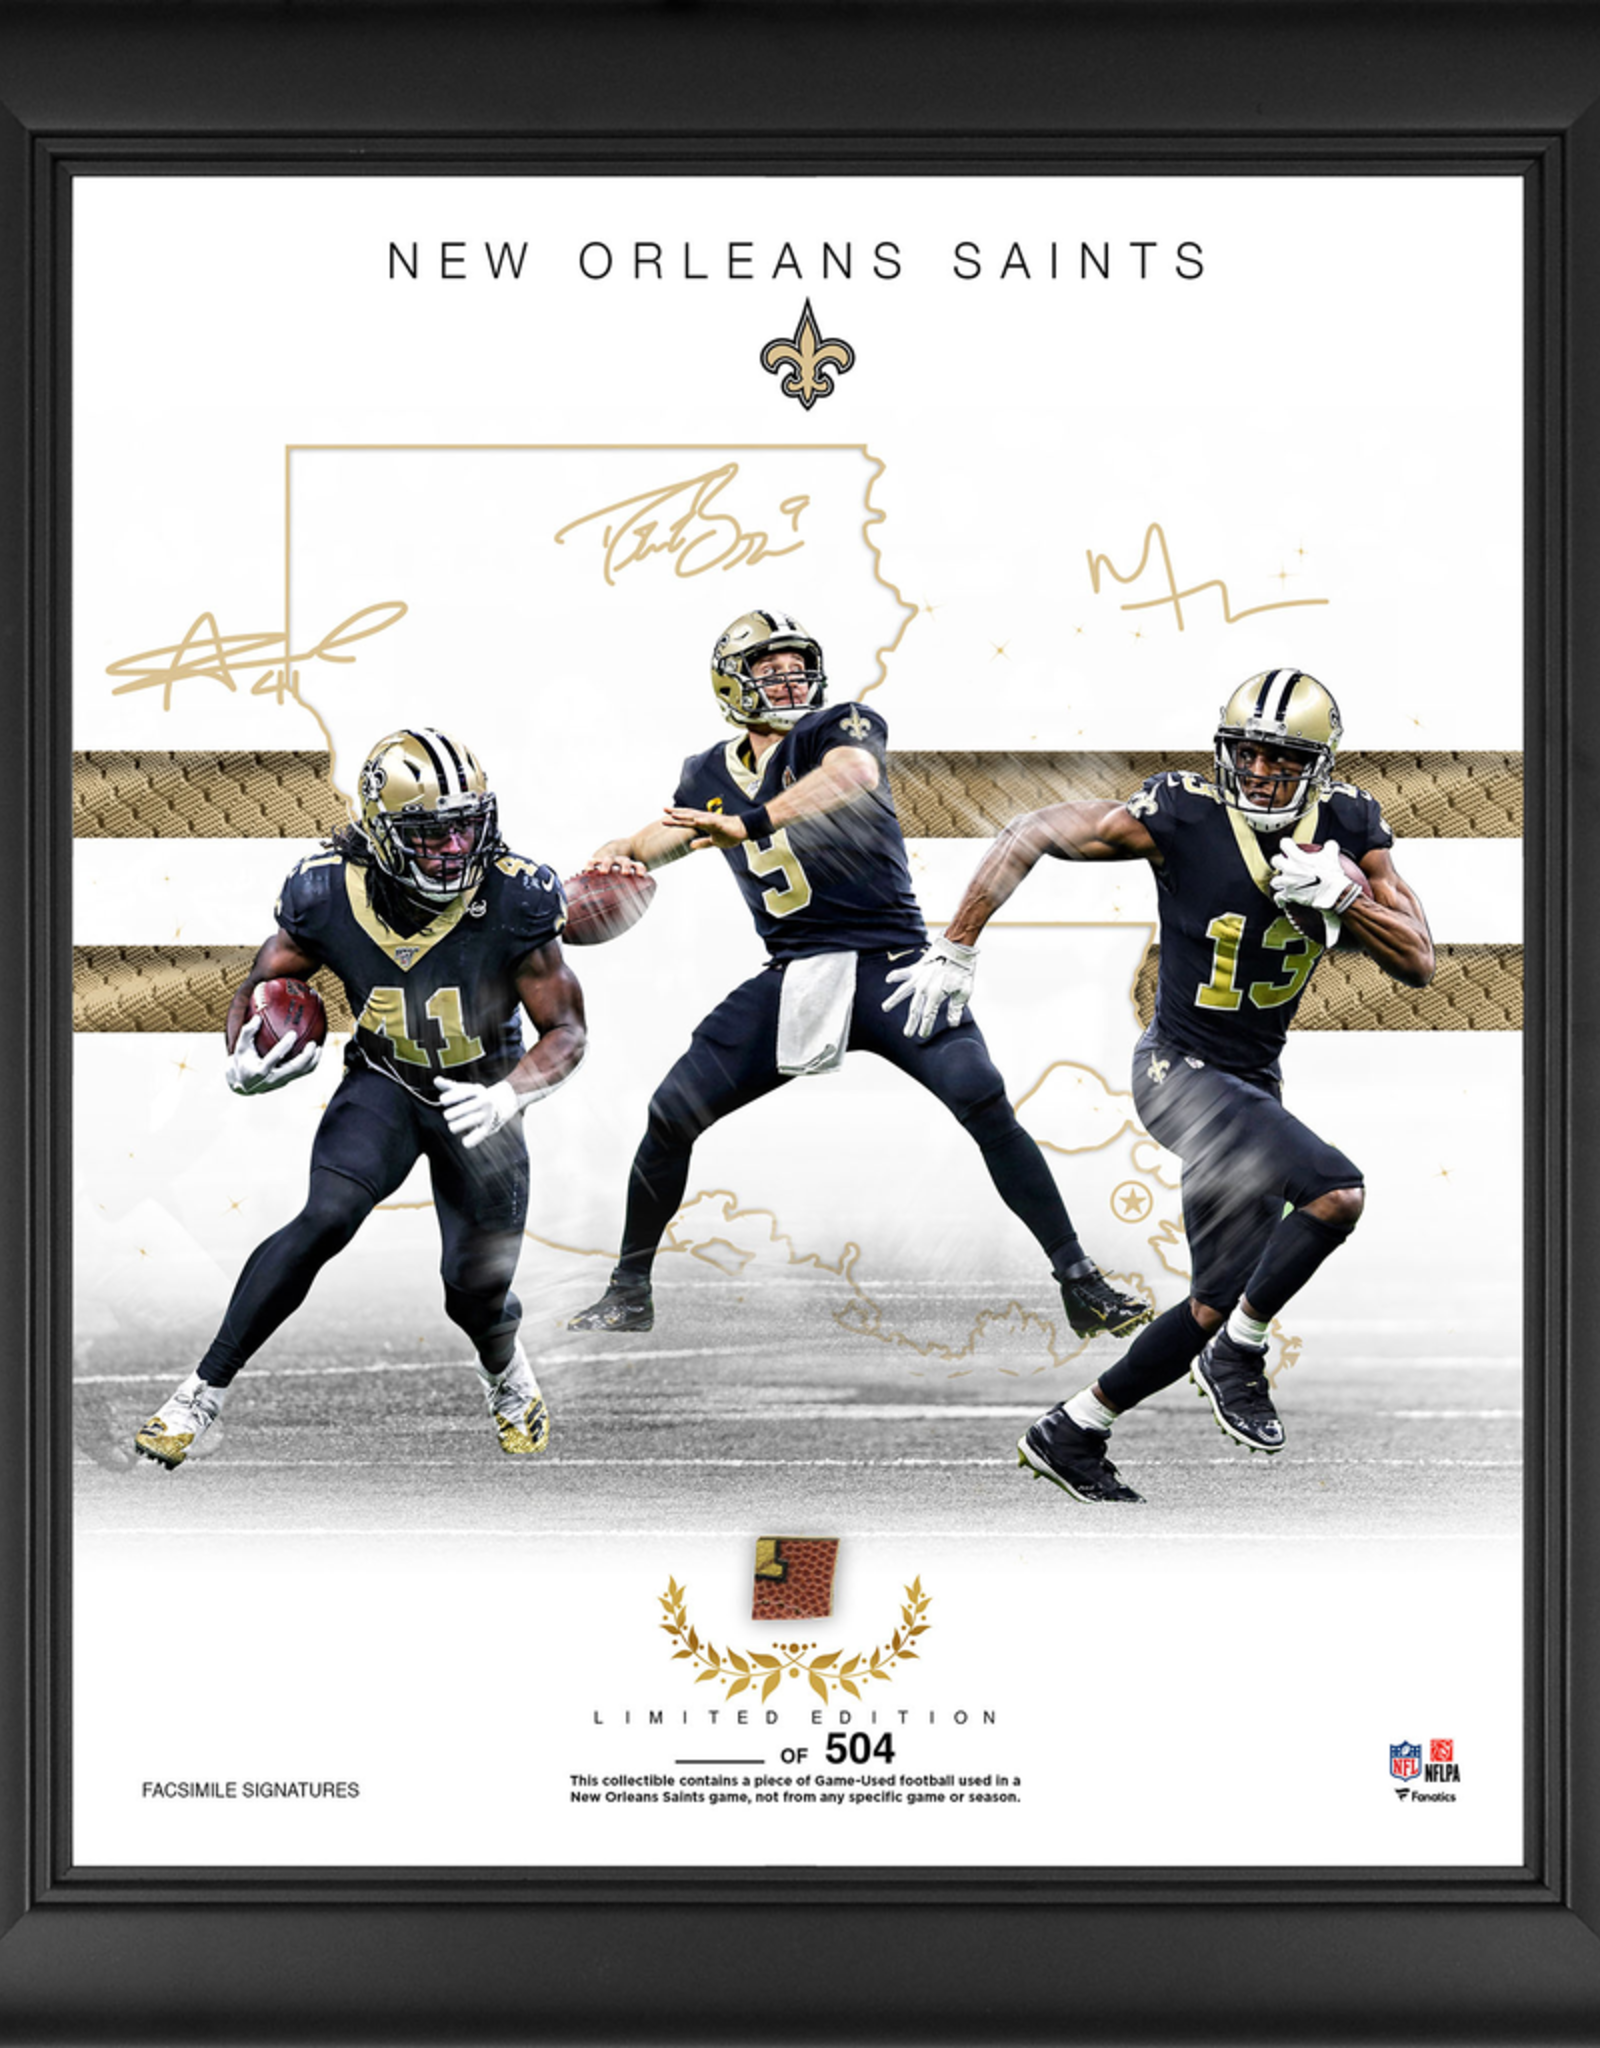 "MOUNTED MEMORIES New Orleans Saints LIMITED EDITION Framed 15"" x 17"" Franchise Foundations Collage with a Piece of Game Used Football"